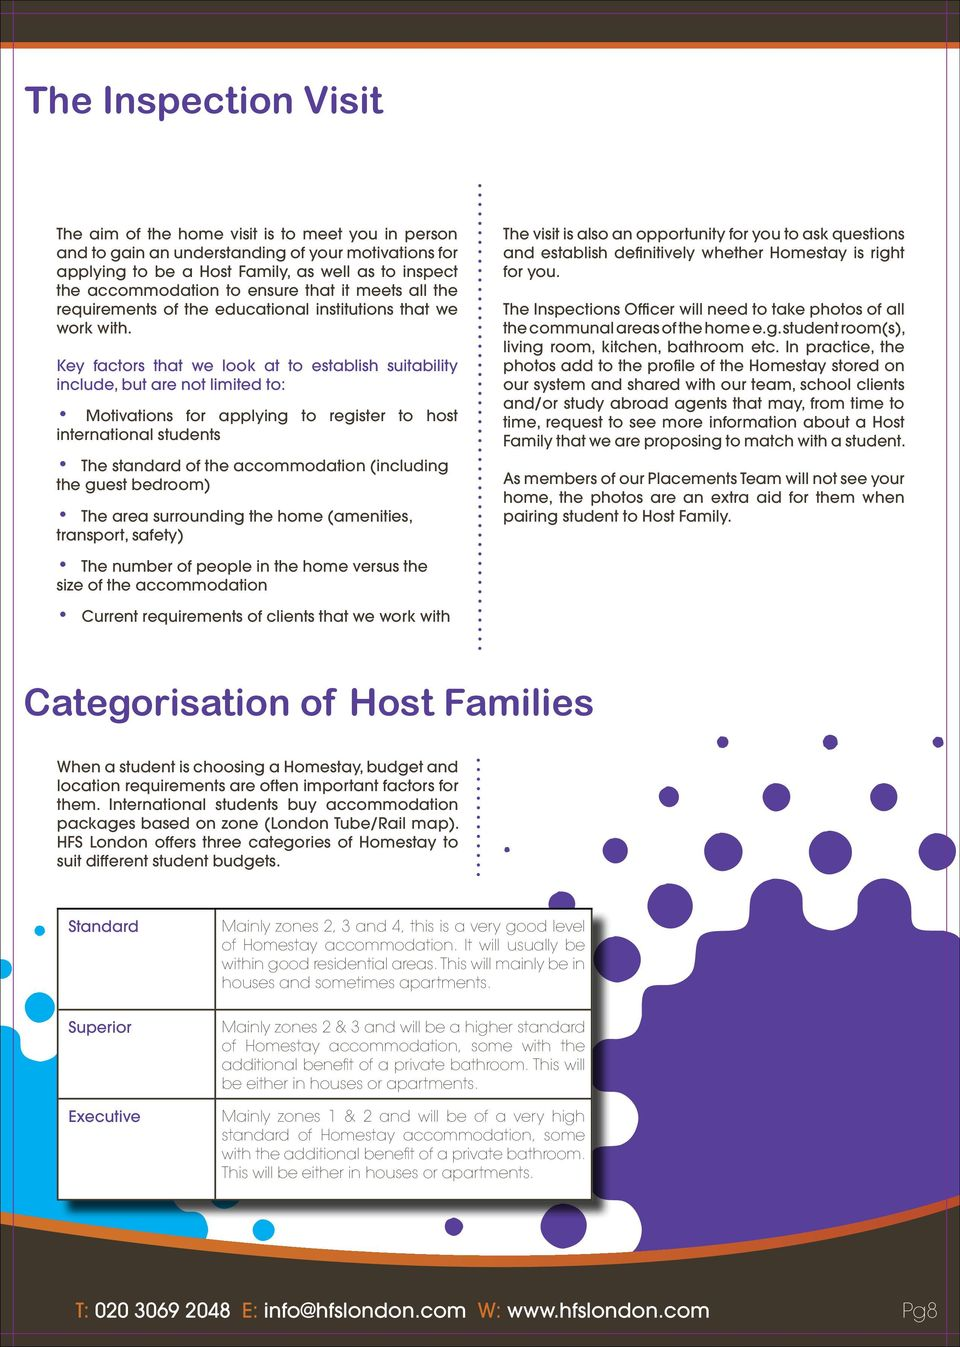 Key factors that we look at to establish suitability include, but are not limited to: Motivations for applying to register to host international students The standard of the accommodation (including